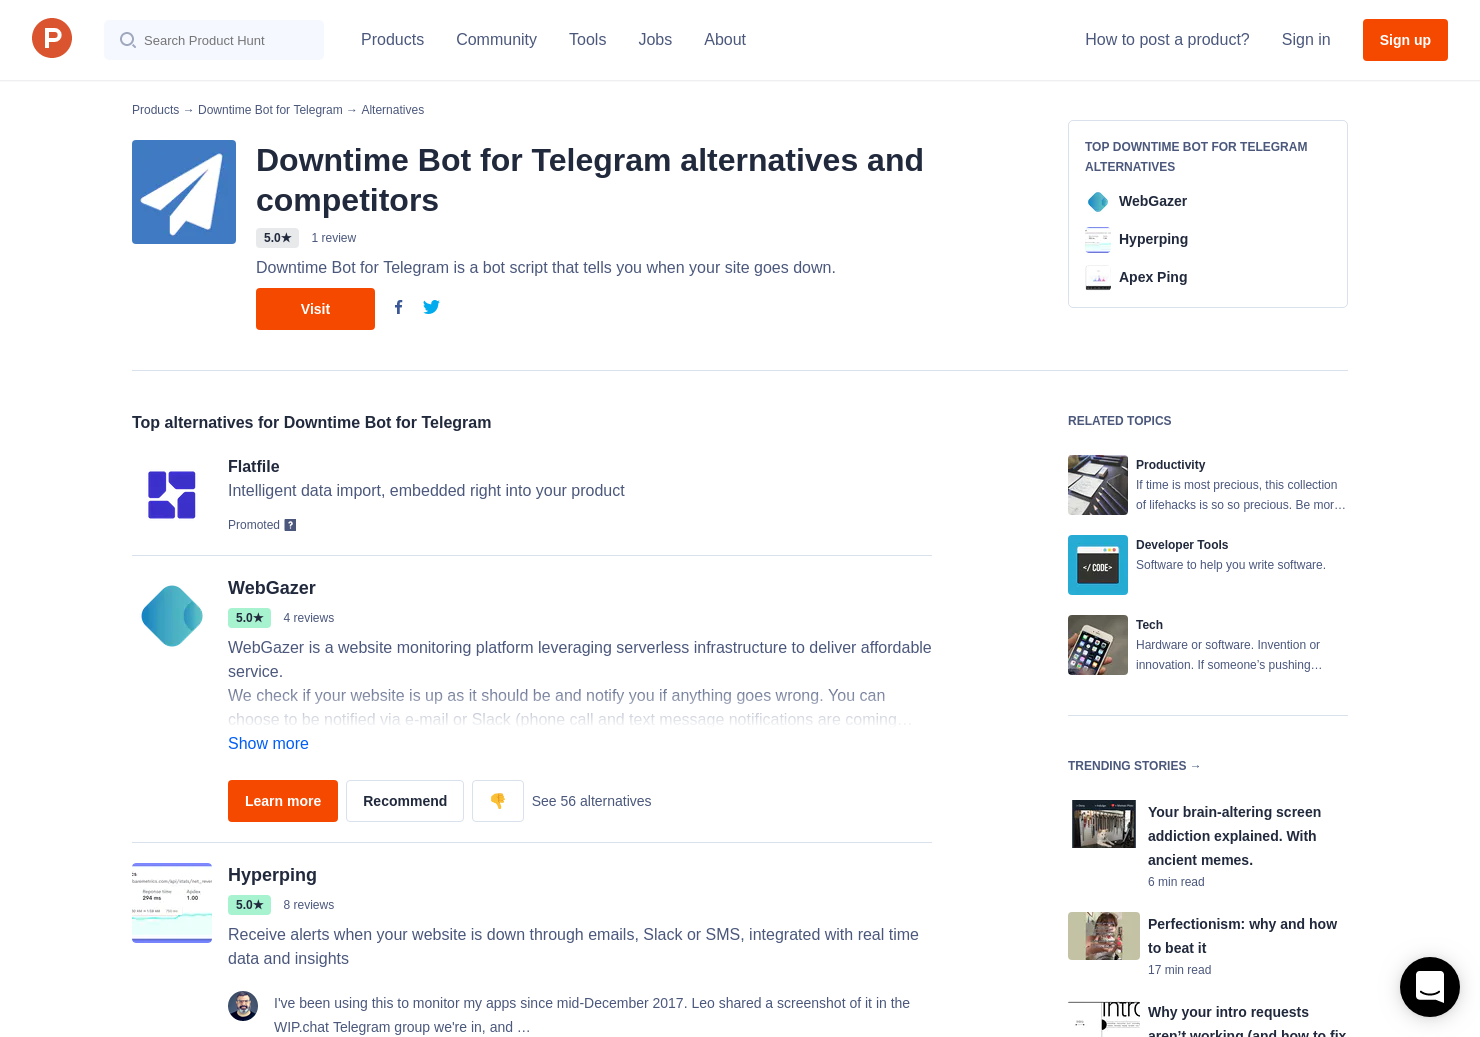 22 Alternatives to Downtime Bot for Telegram | Product Hunt